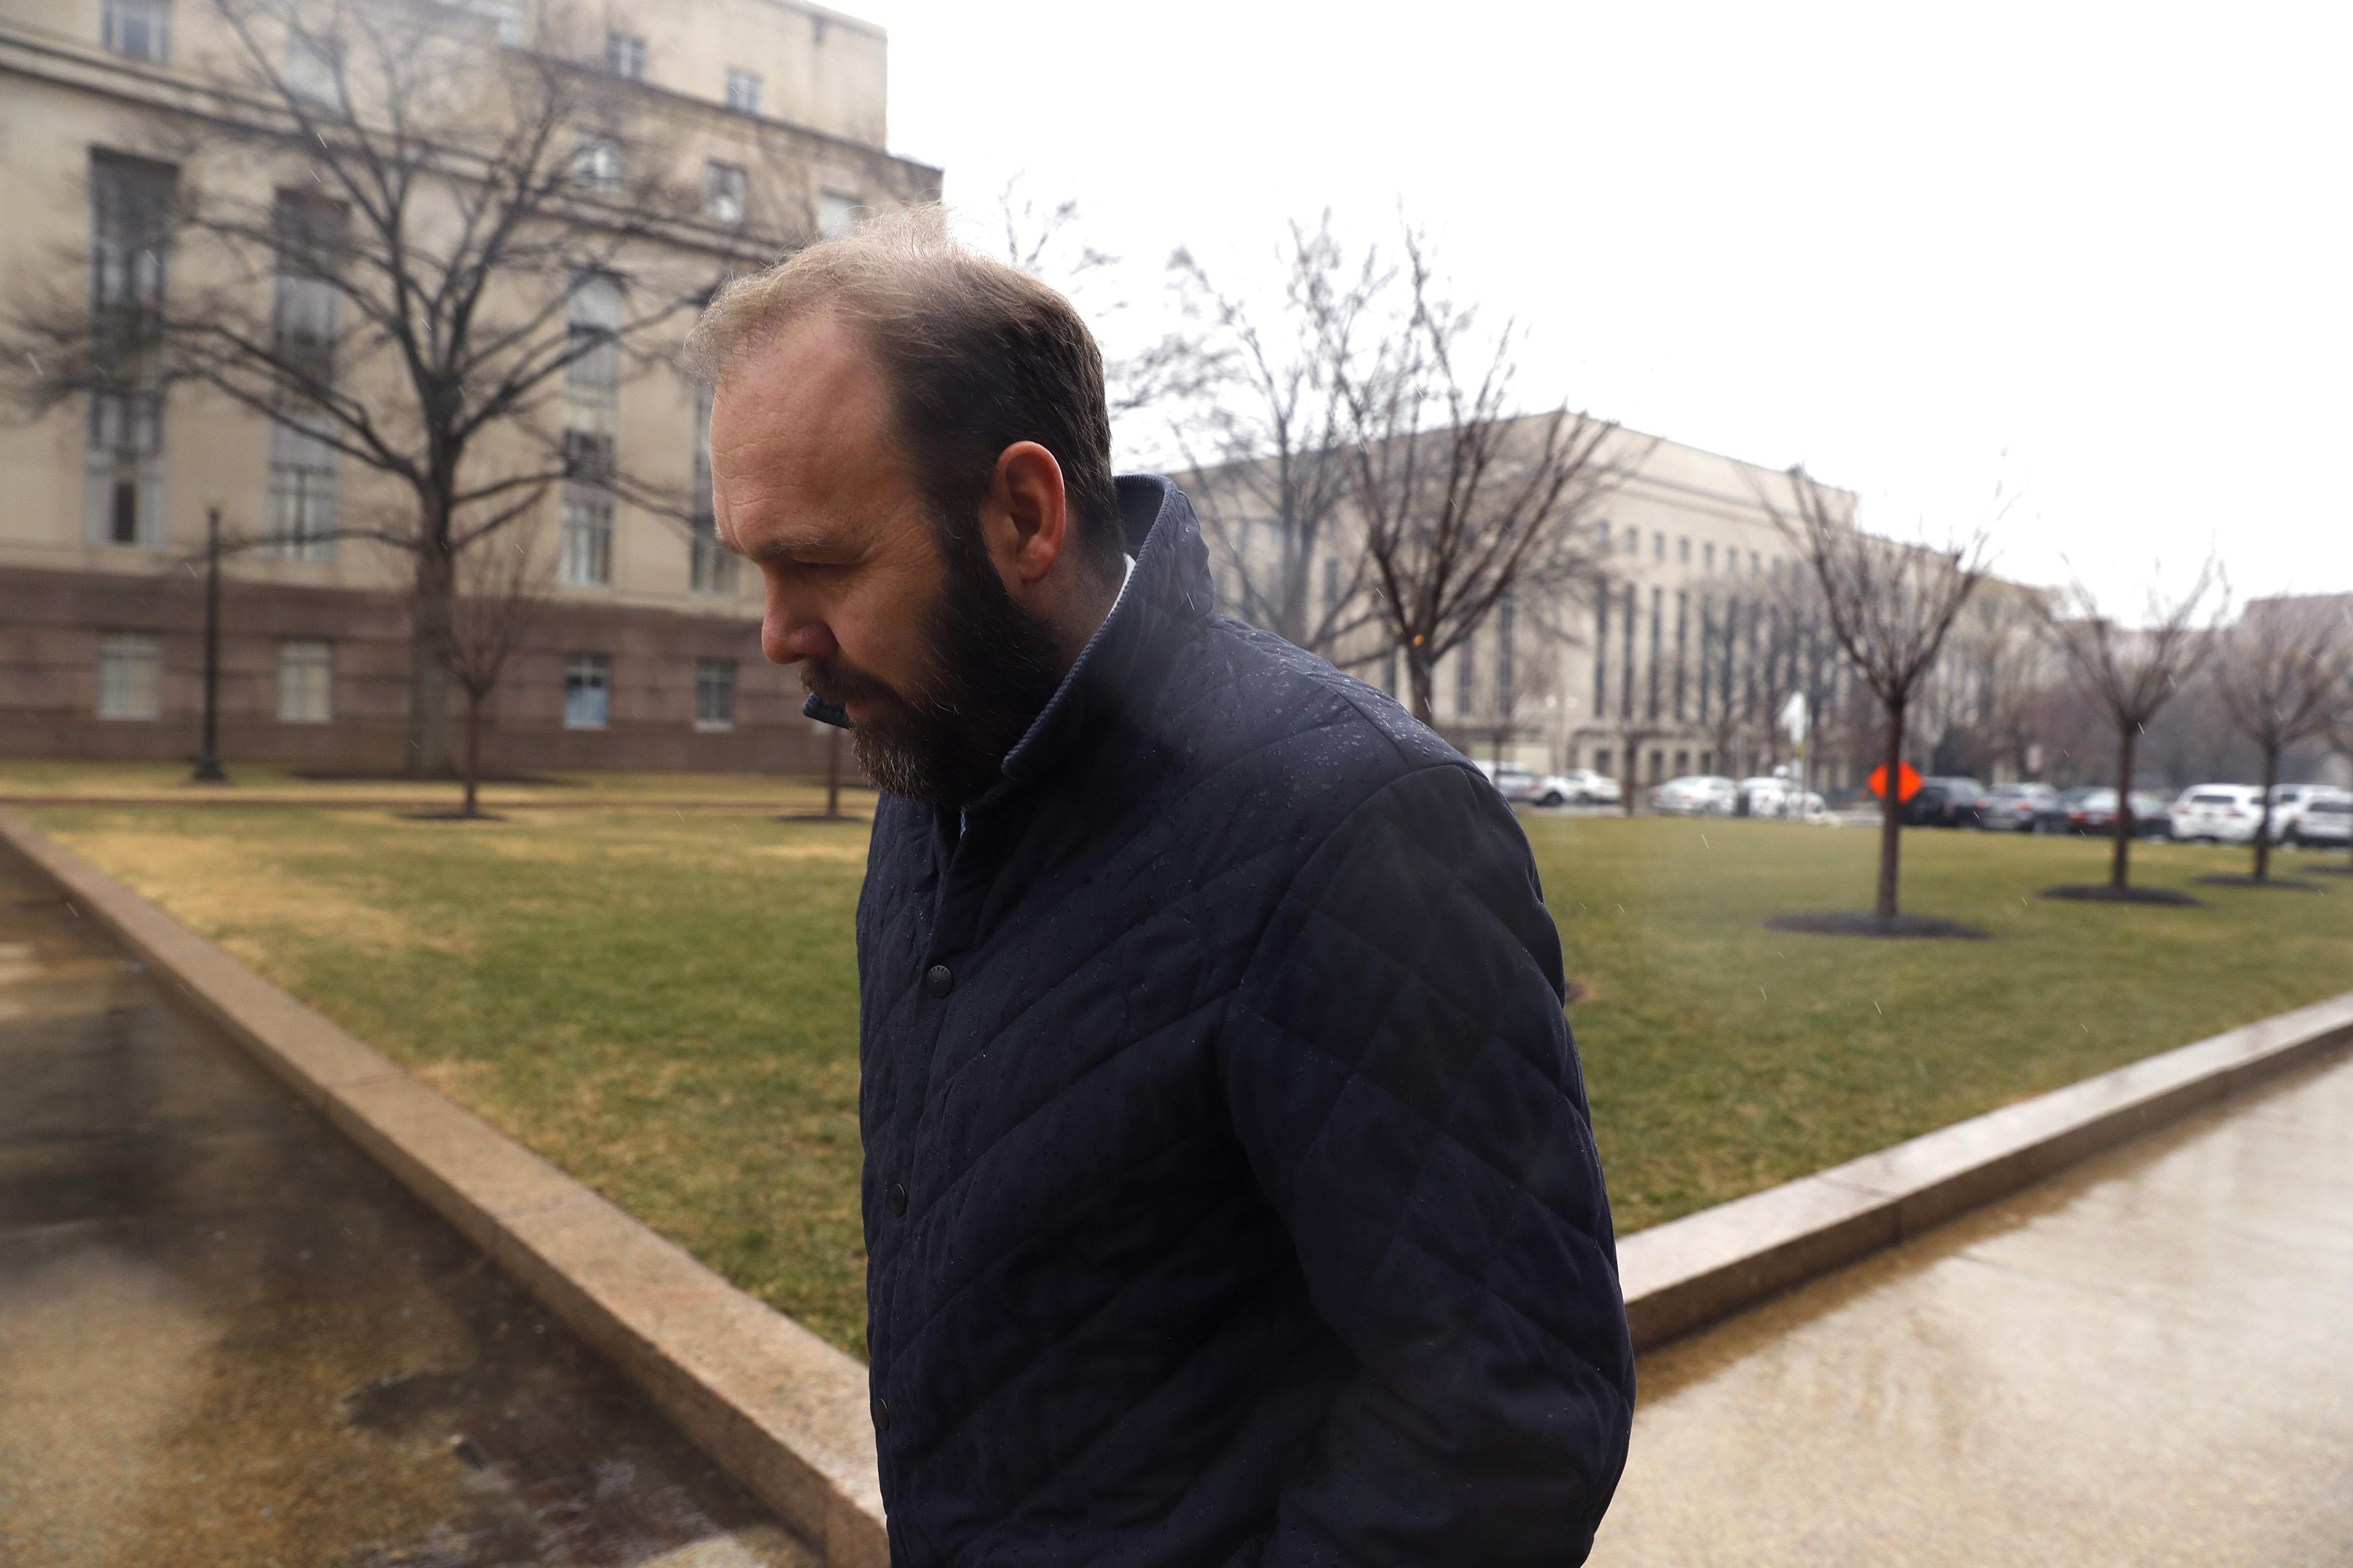 Former Trump Aide Rick Gates attends a hearing on his fraud, conspiracy and money-laundering charges at the E. Barrett Prettyman United States Courthouse on February 7, 2018 in Washington, D.C.